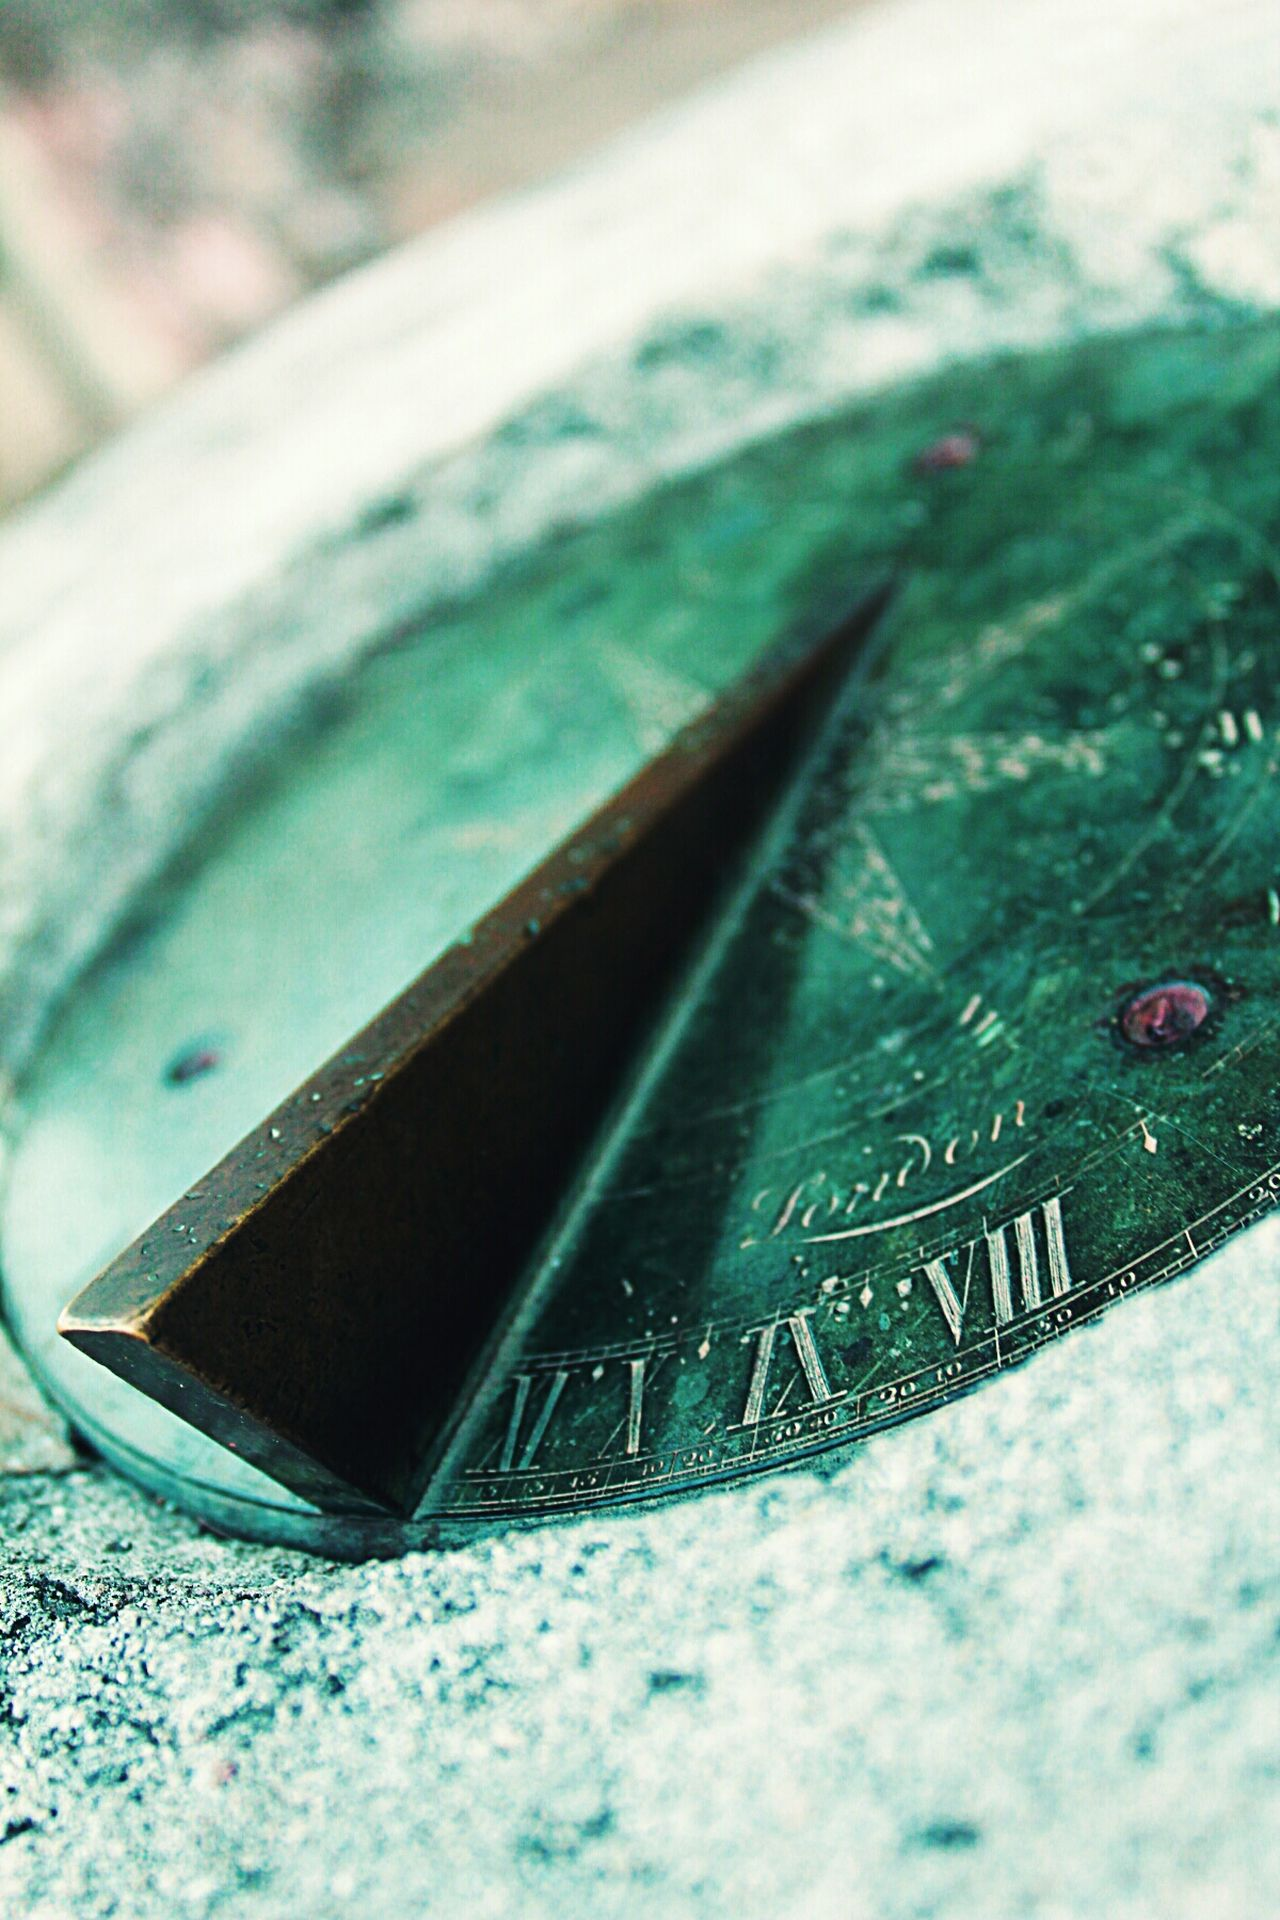 Sundial Time Compass History Through The Lens  Capturing History Watch The Clock